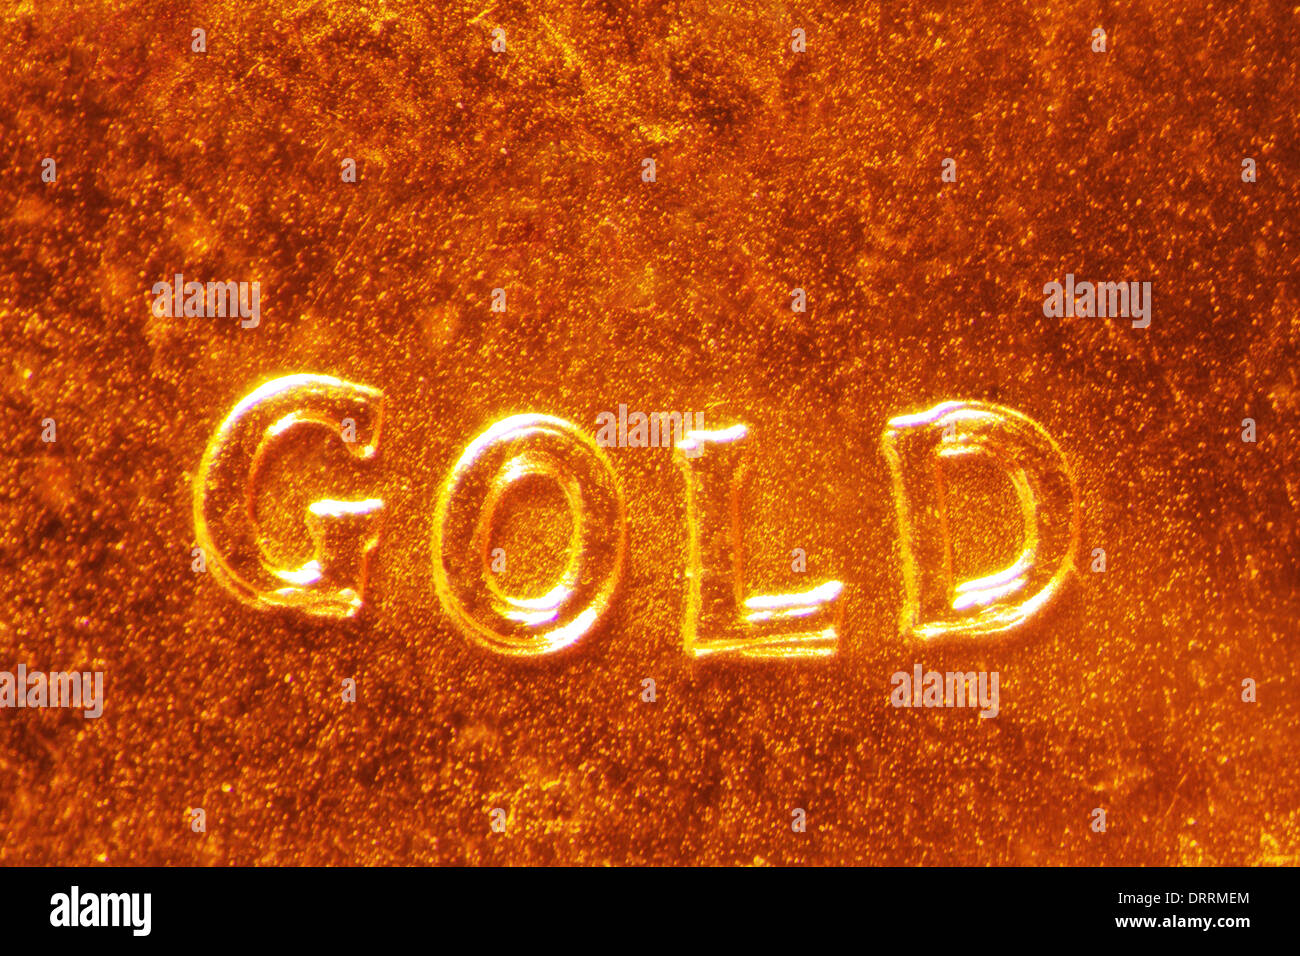 Micro photo of a gold coin stock photo royalty free image micro photo of a gold coin buycottarizona